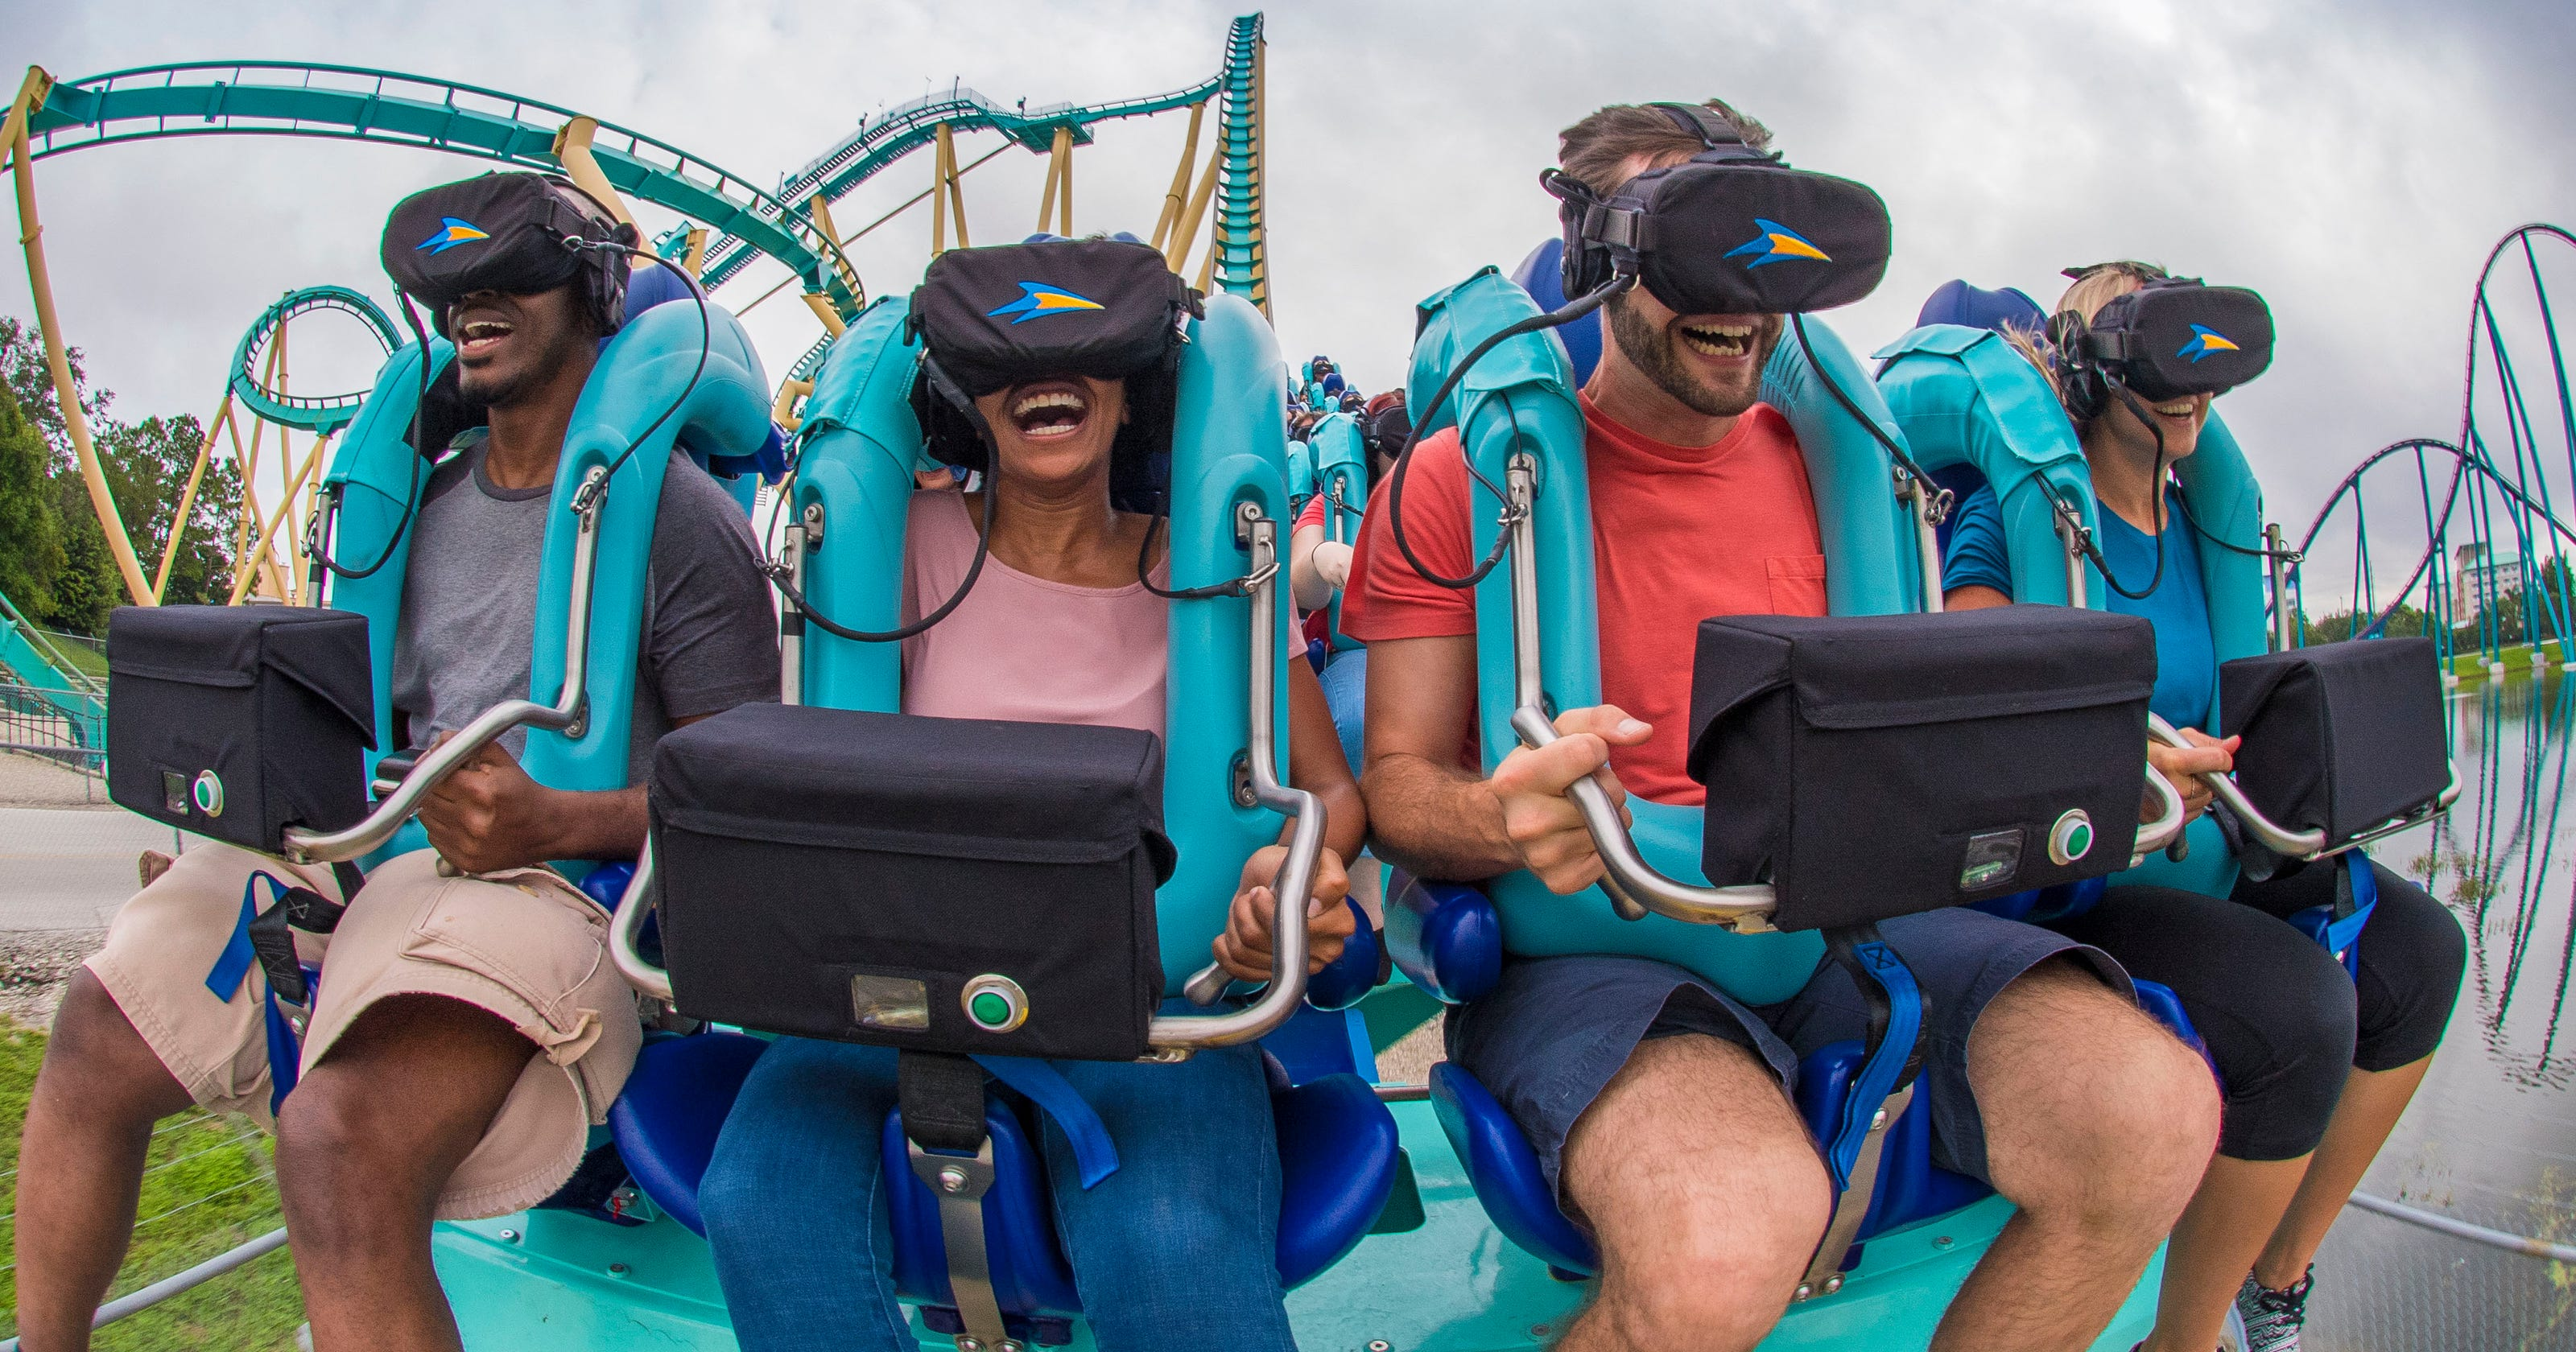 Virtual reality: VR tech added to theme park attractions